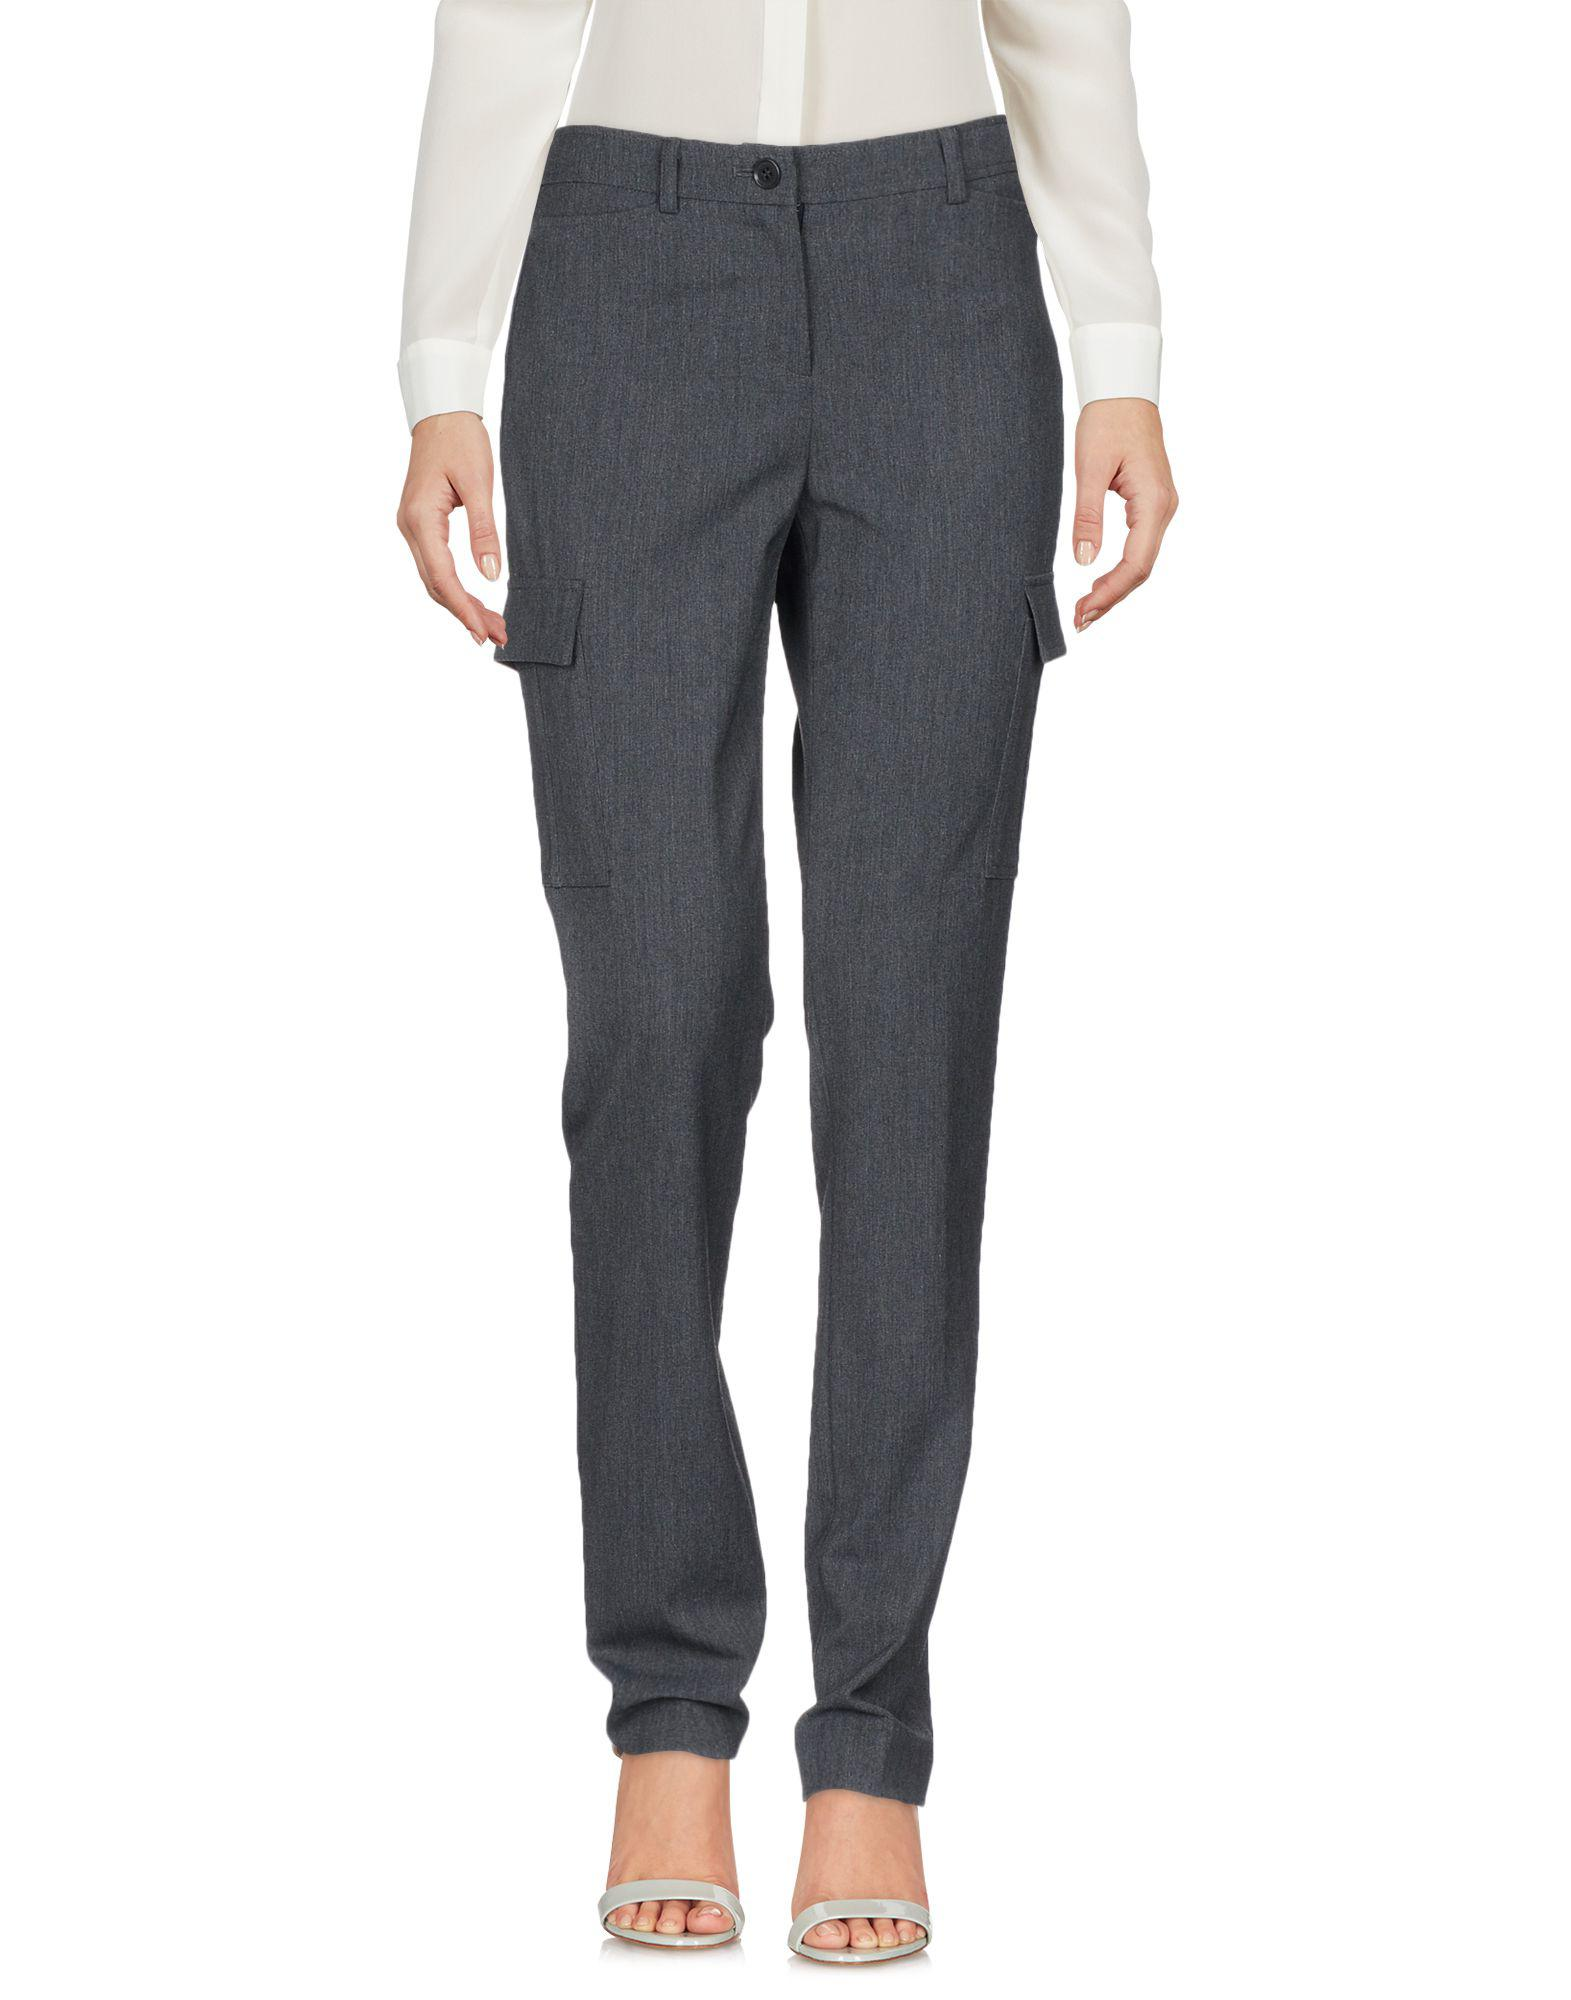 TROUSERS - Casual trousers ICB Sale Official Discount Good Selling Outlet For Cheap Low Price Discount Low Cost o5TG2JC